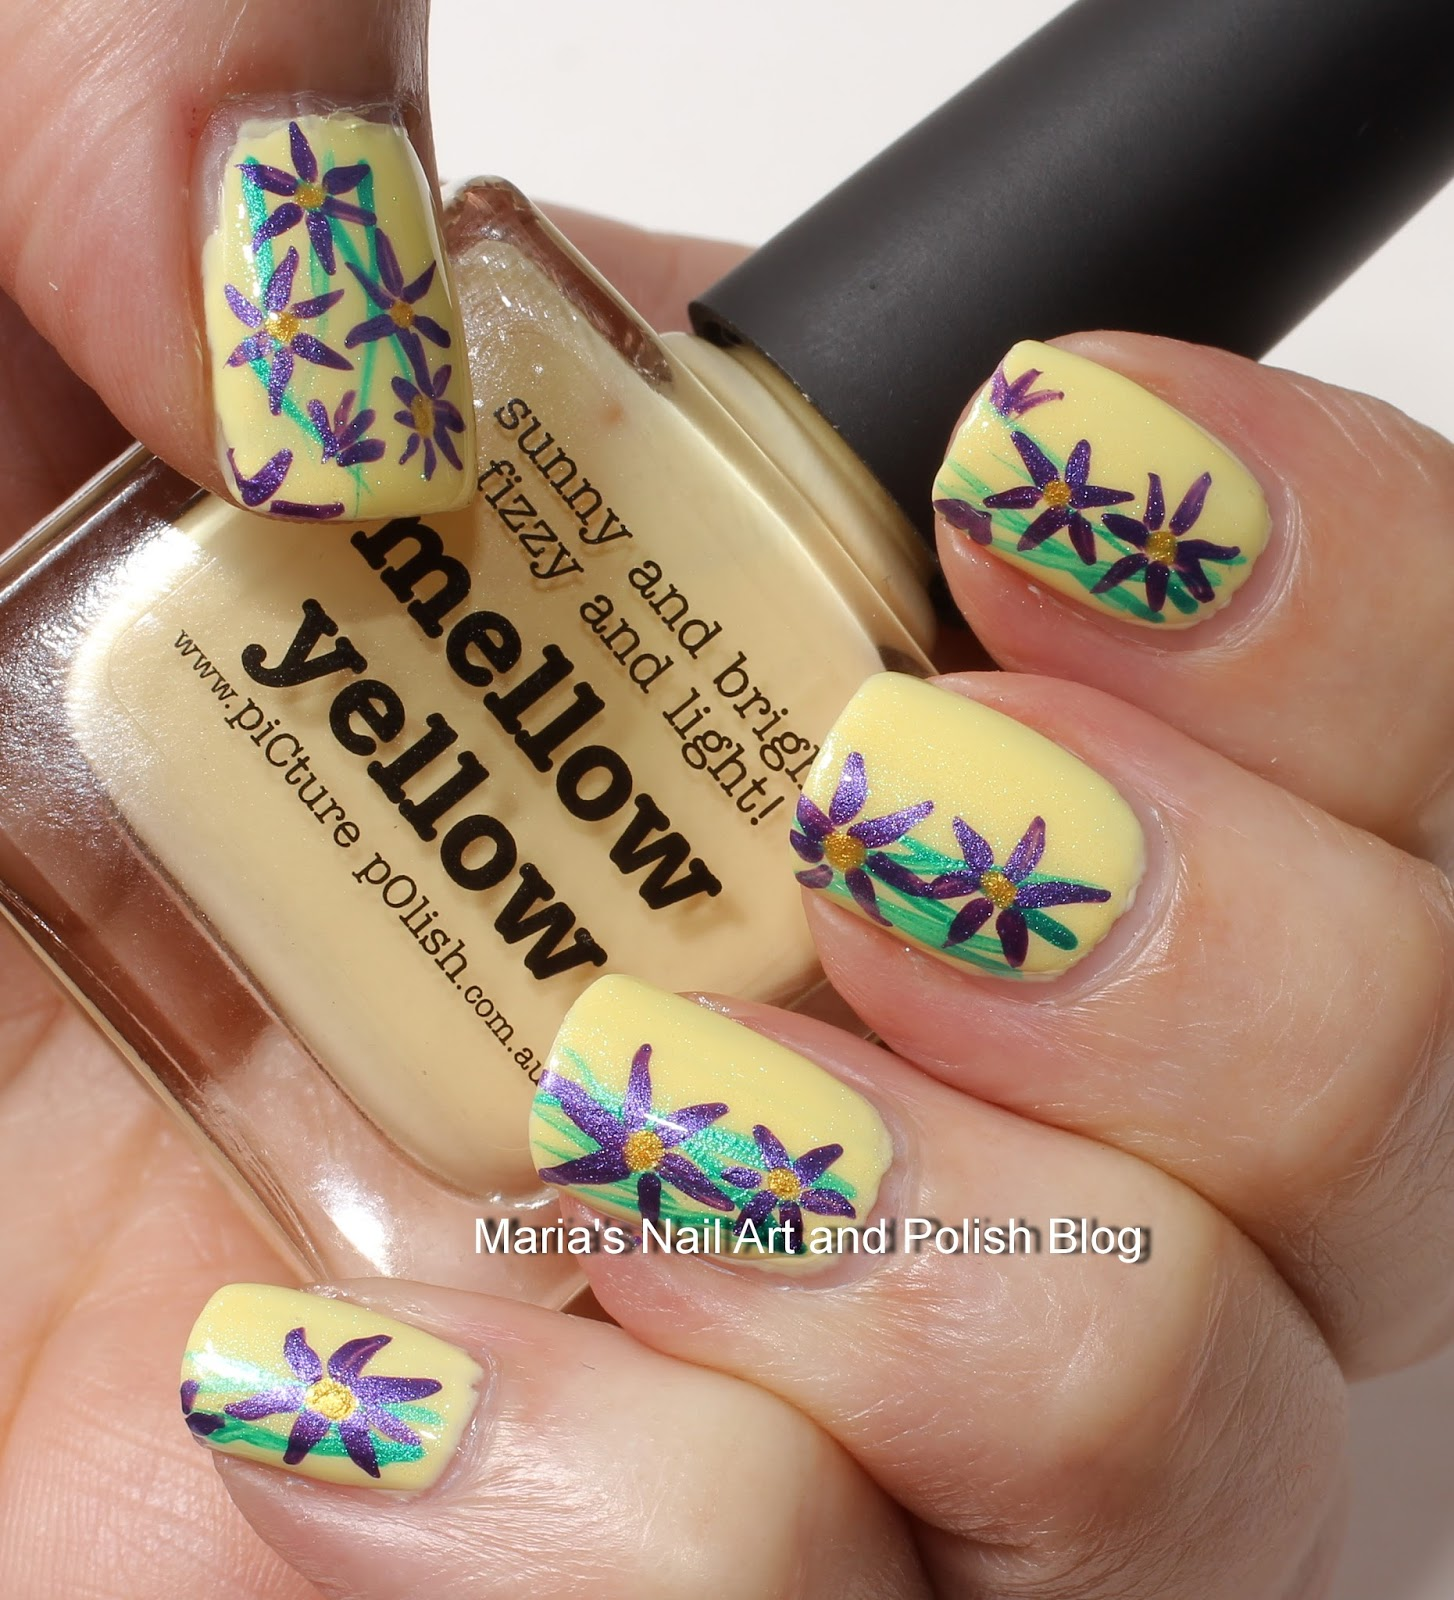 Marias Nail Art And Polish Blog Subtle Floral Nail Art On: Marias Nail Art And Polish Blog: Purple Flowers On Mellow